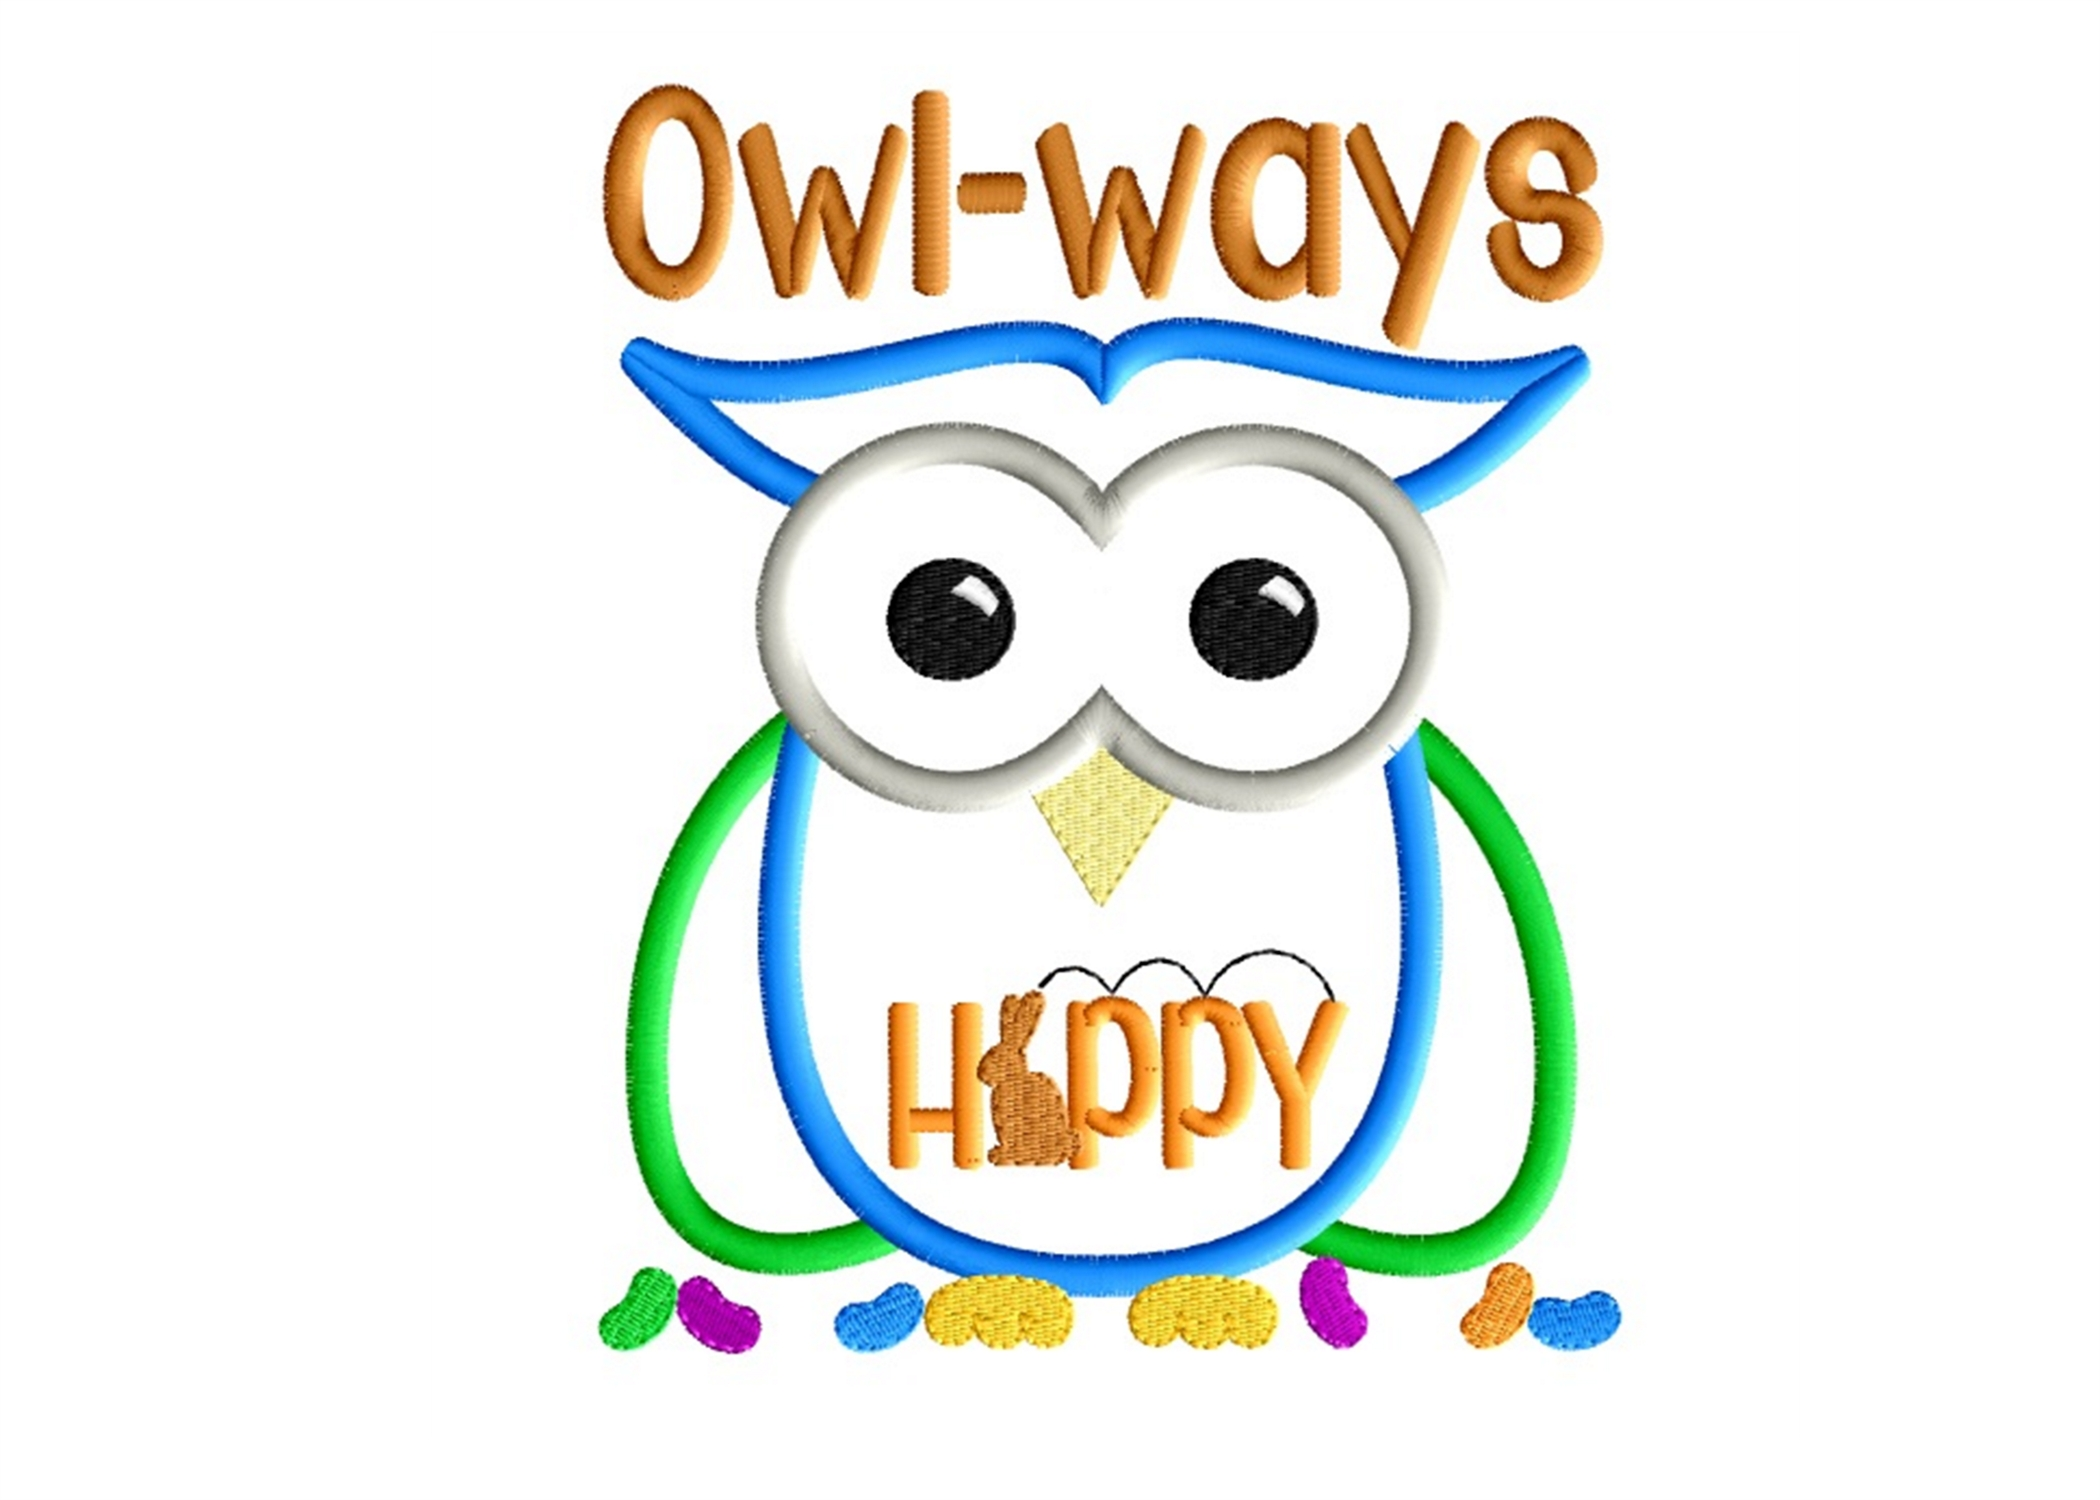 Owl-ways HOPPY